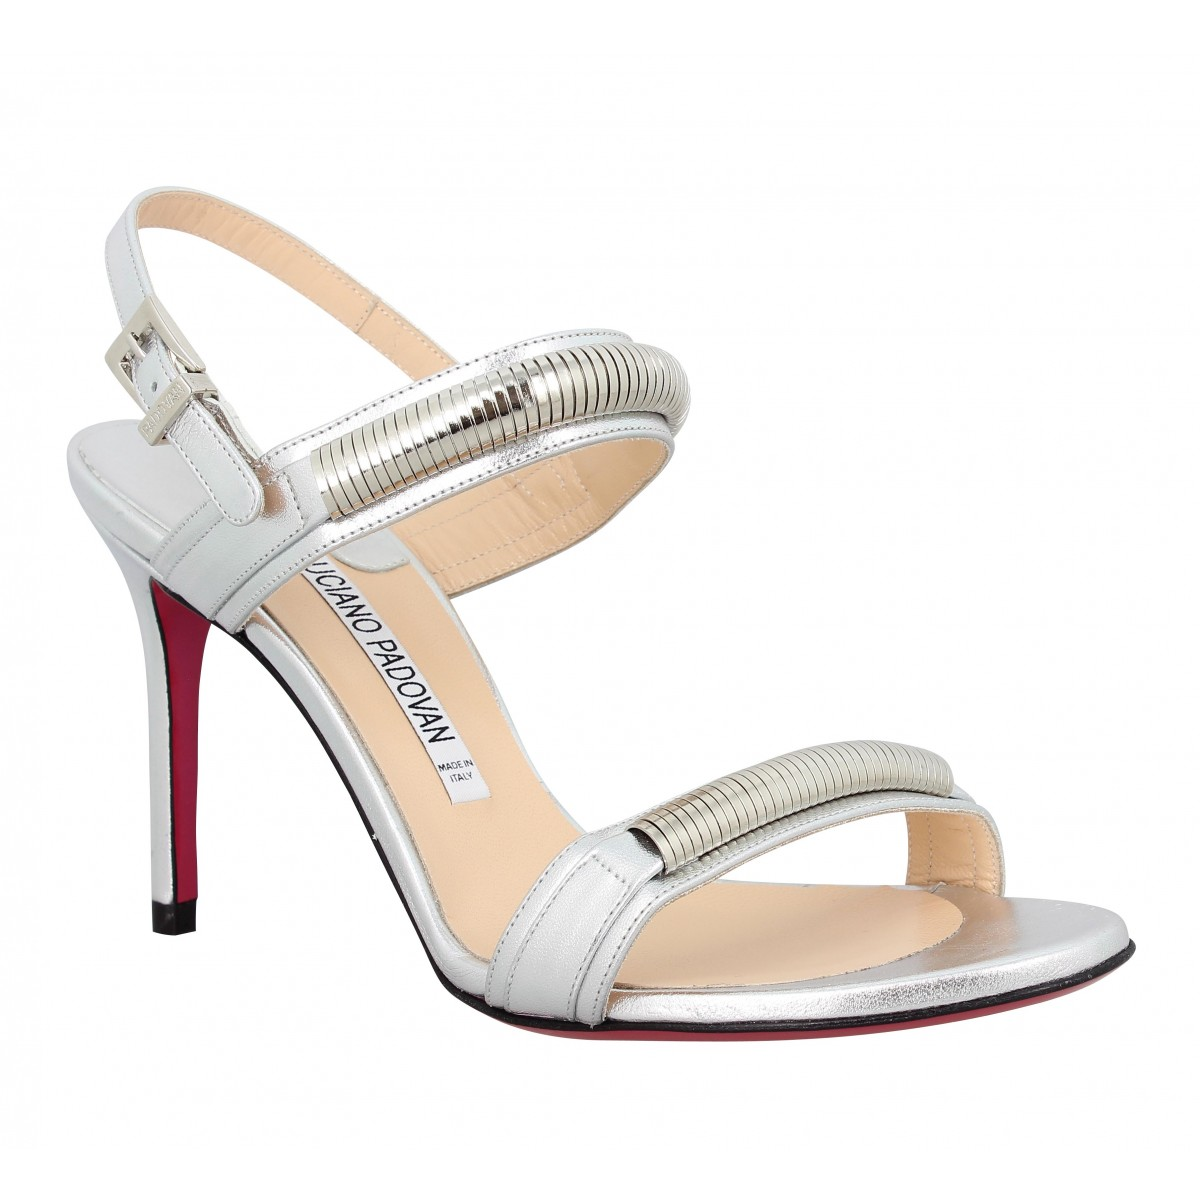 Sandales talons LUCIANO PADOVAN 846 cuir Femme Argent